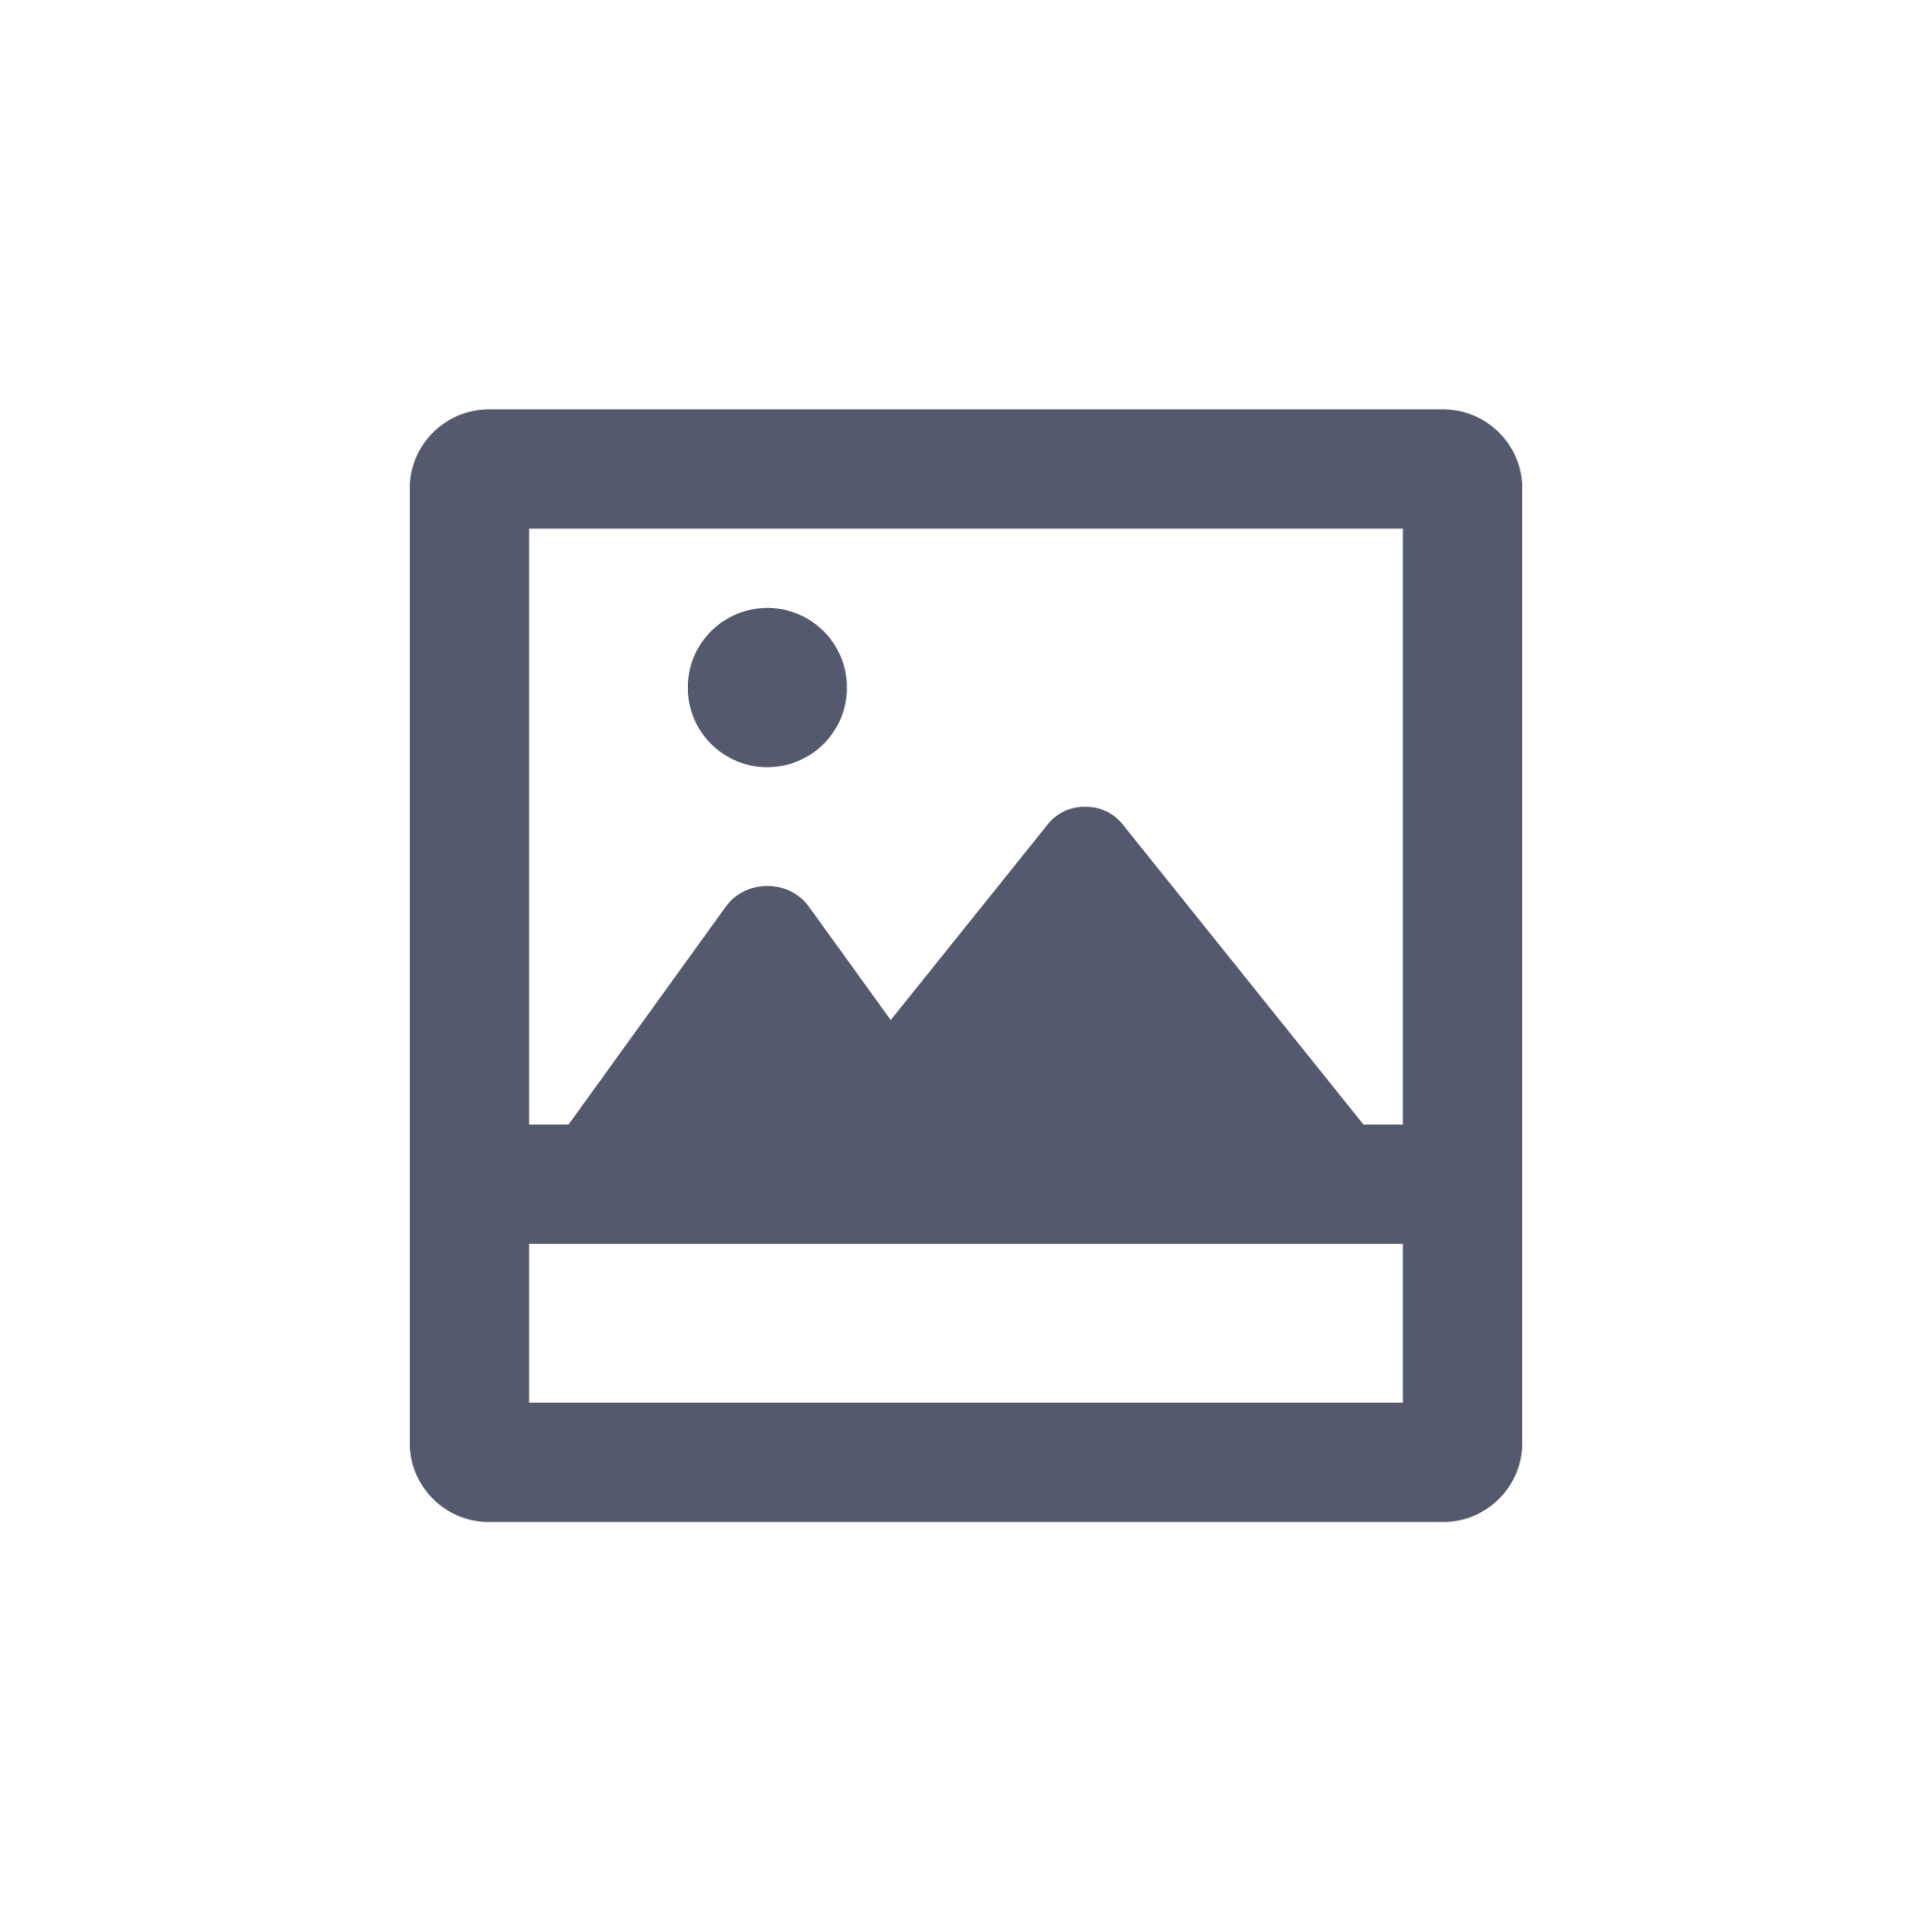 WebPageIcons-03.png